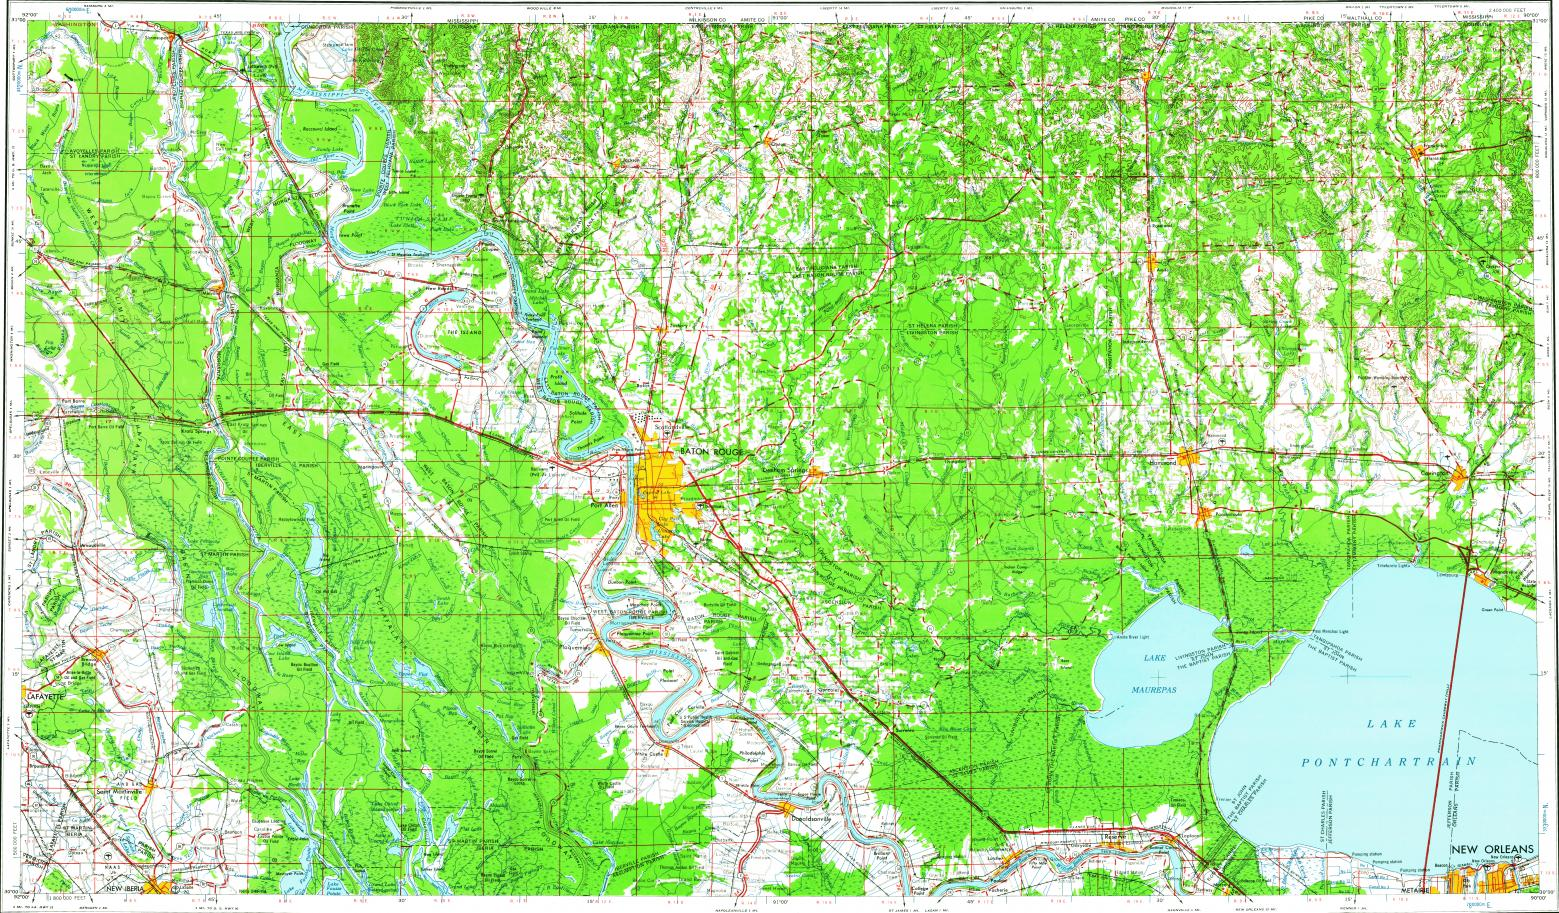 Download topographic map in area of Baton Rouge Kenner Laplace